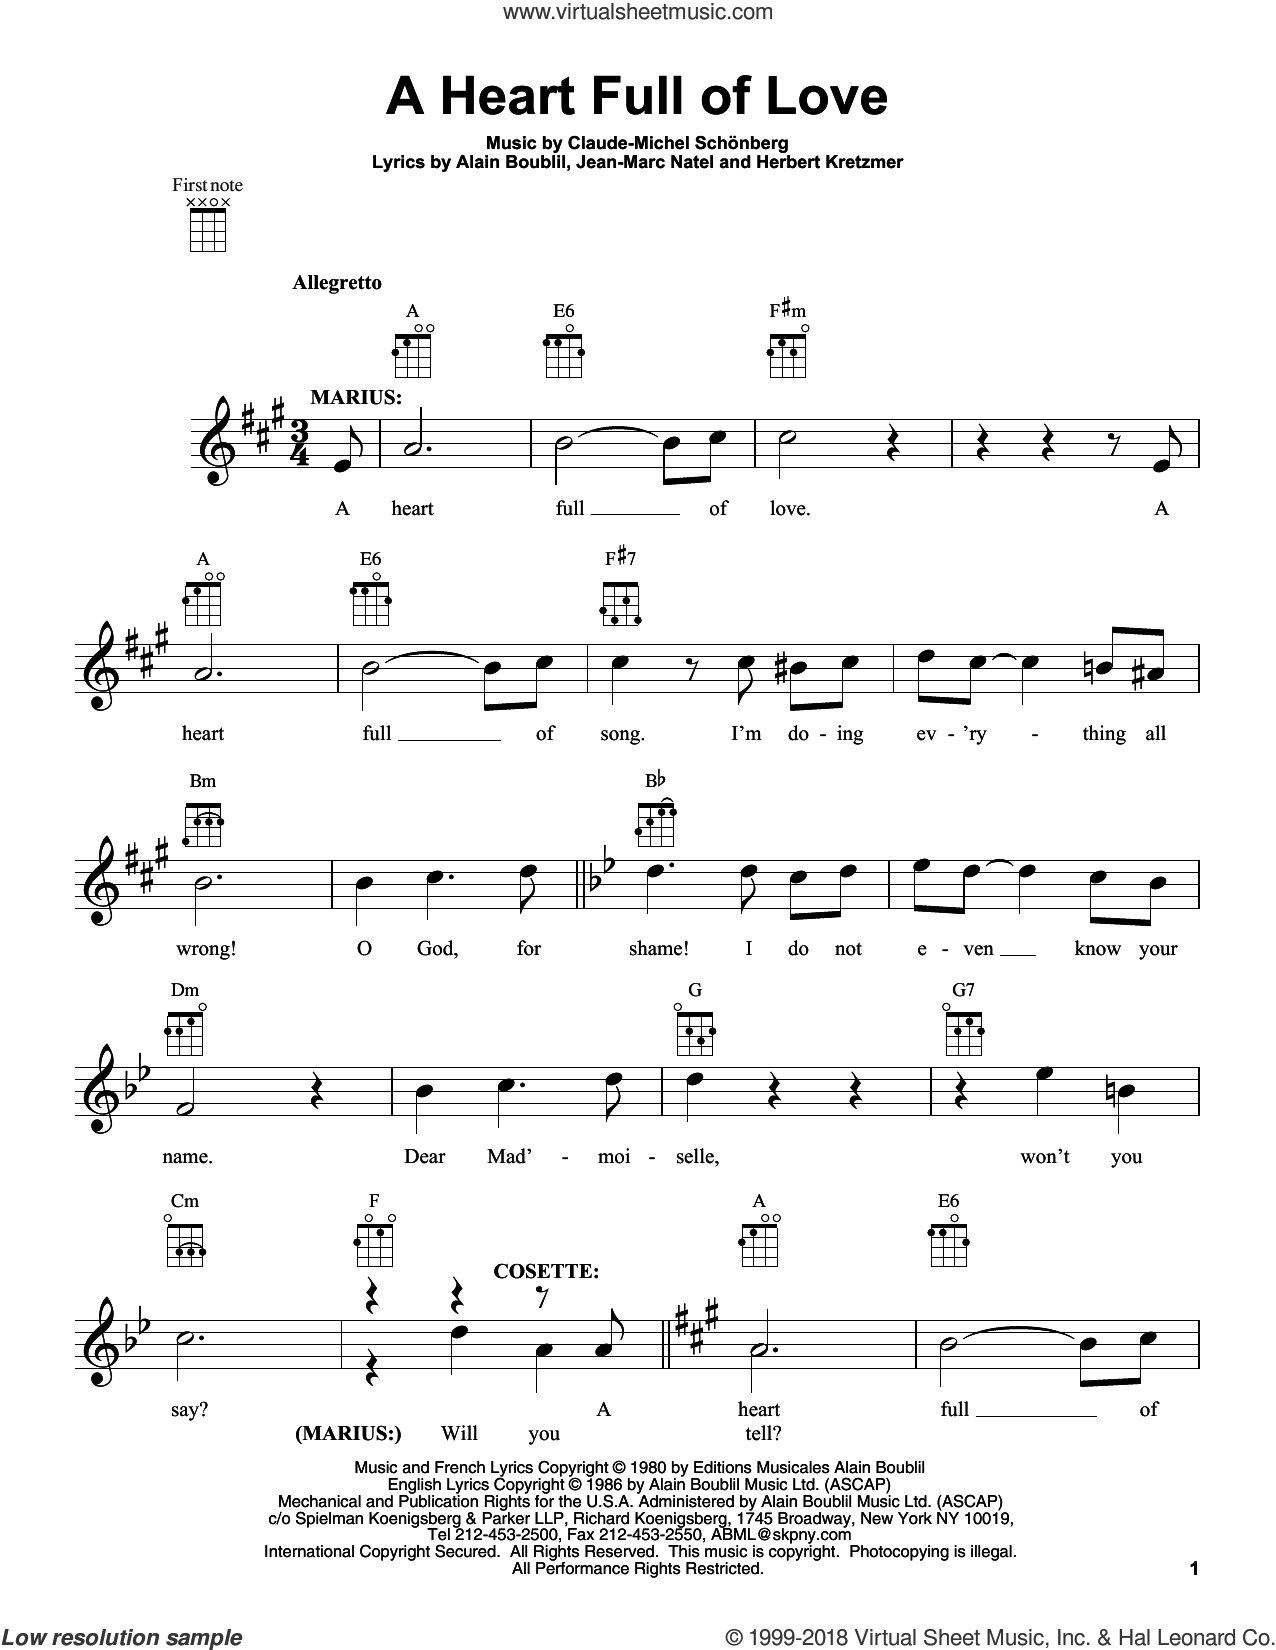 A Heart Full Of Love sheet music for ukulele by Alain Boublil